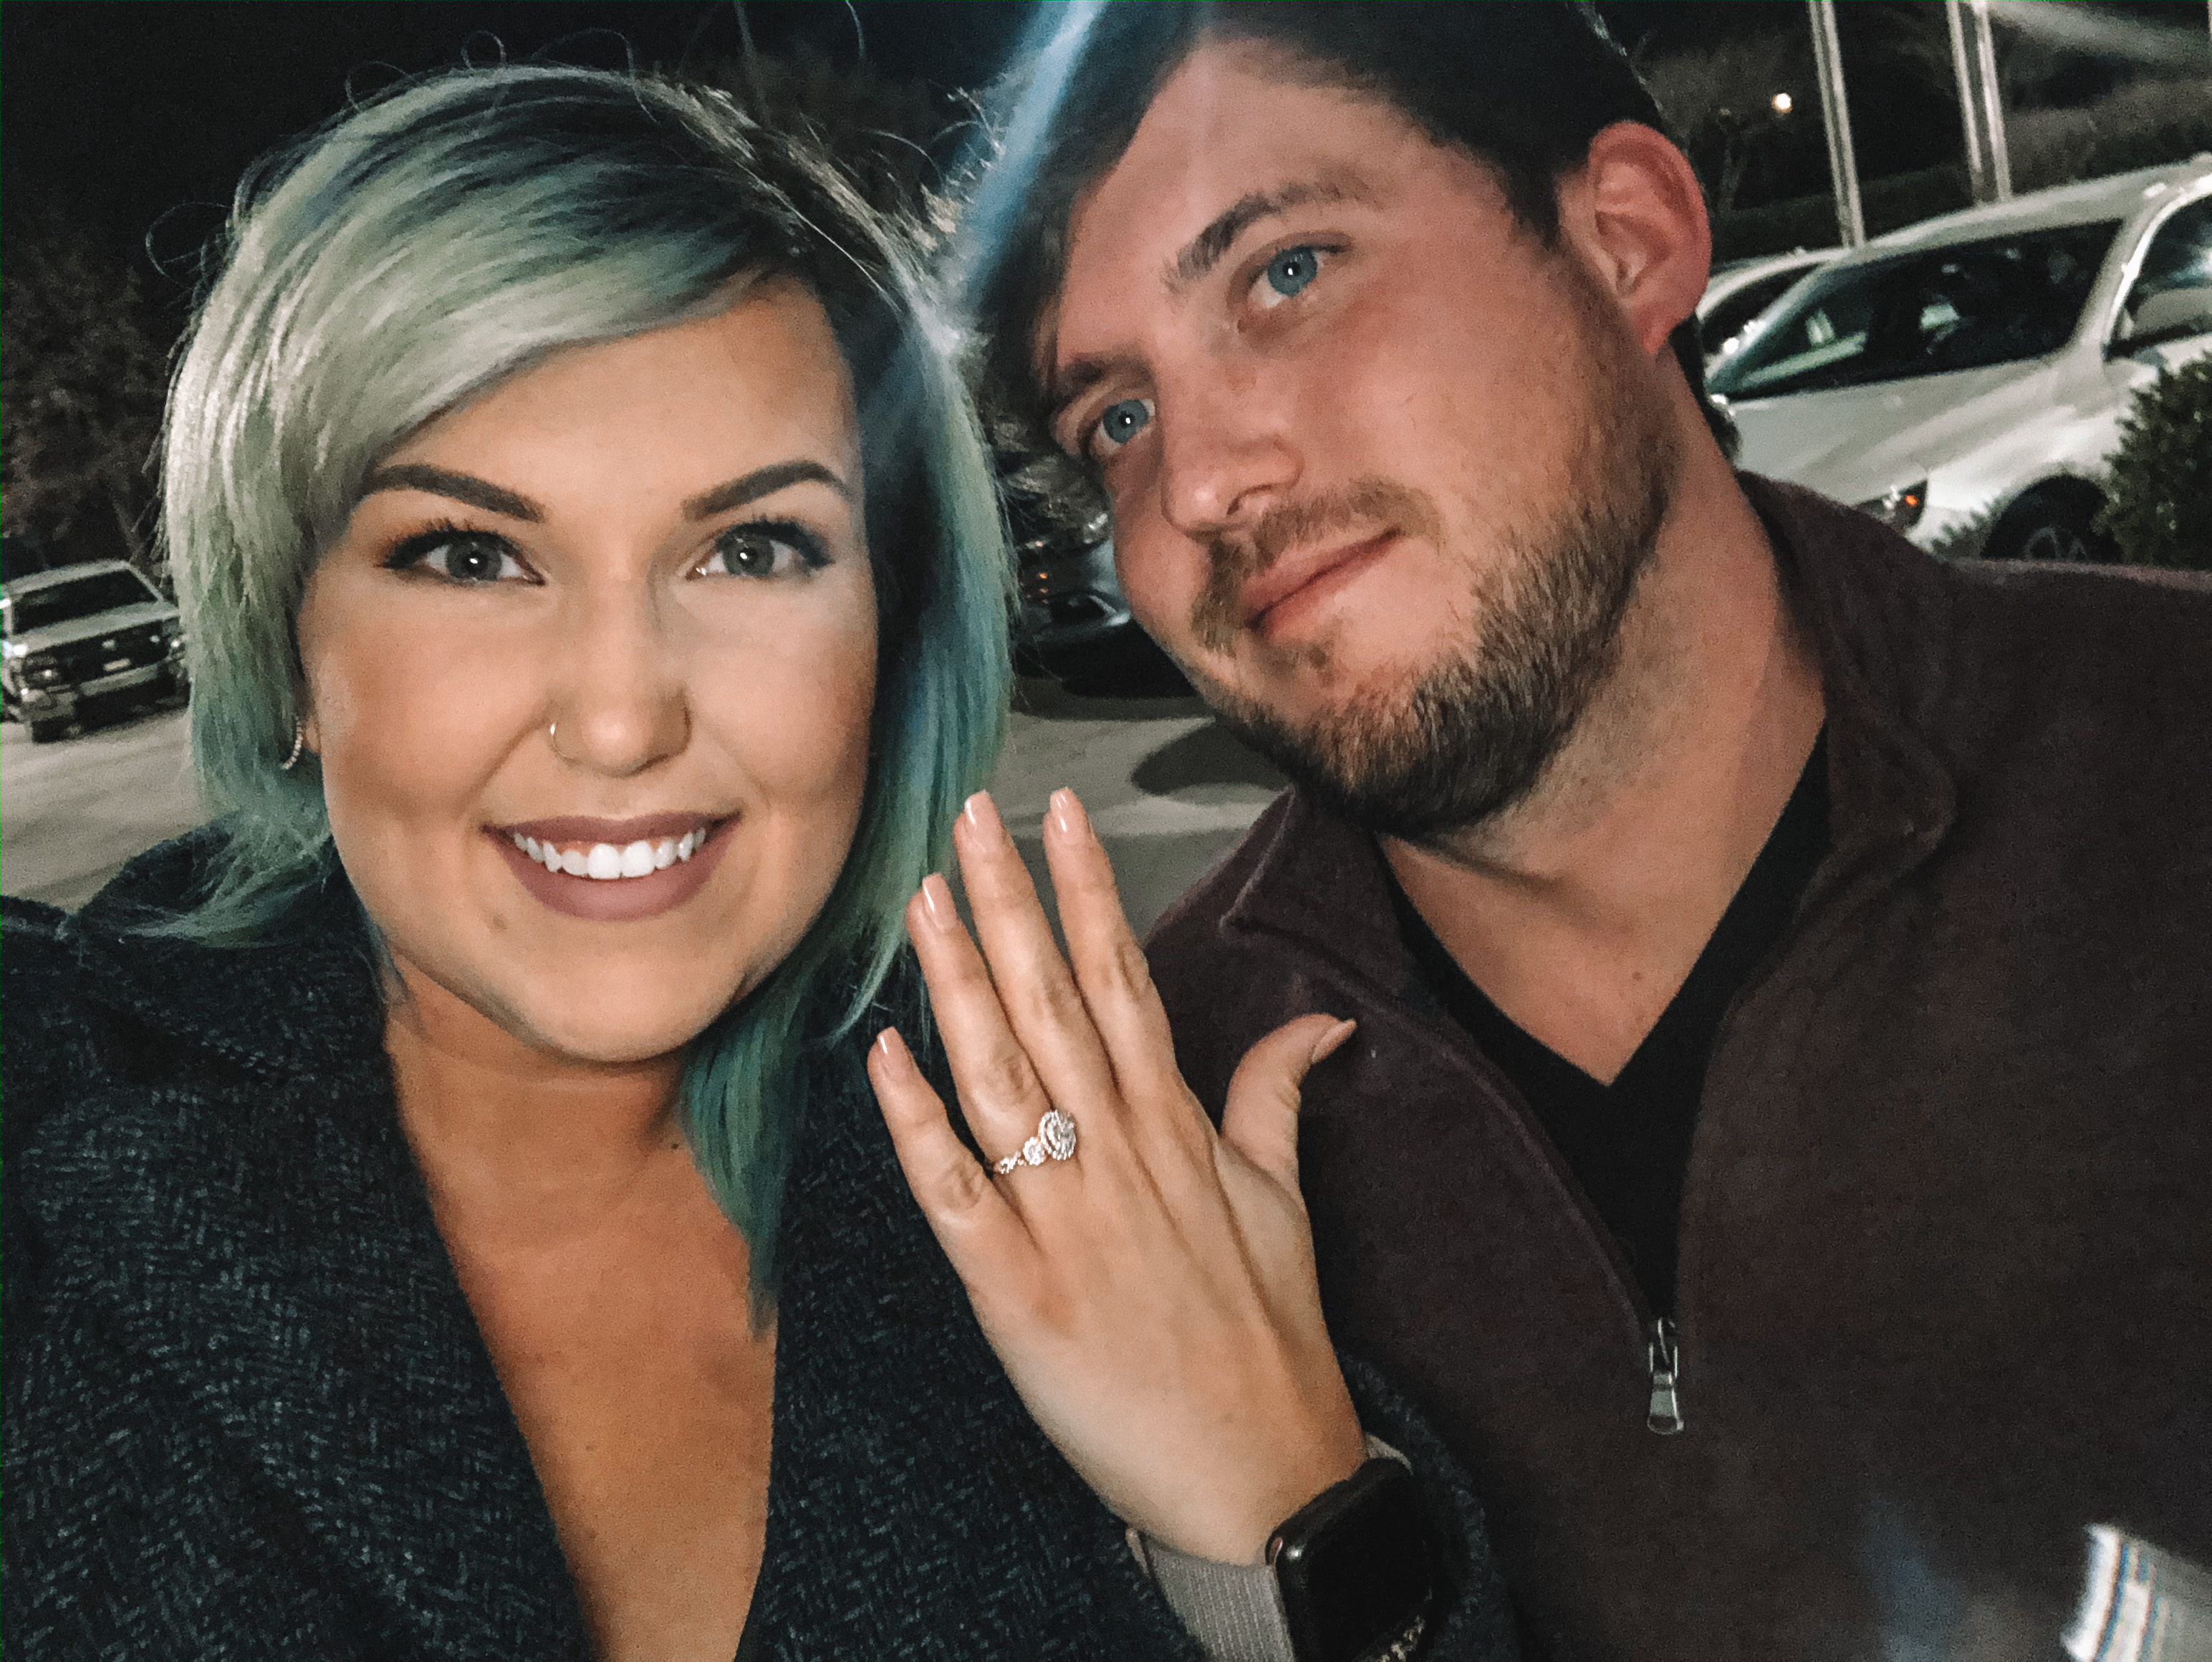 Couple who faked engagement get engaged for real